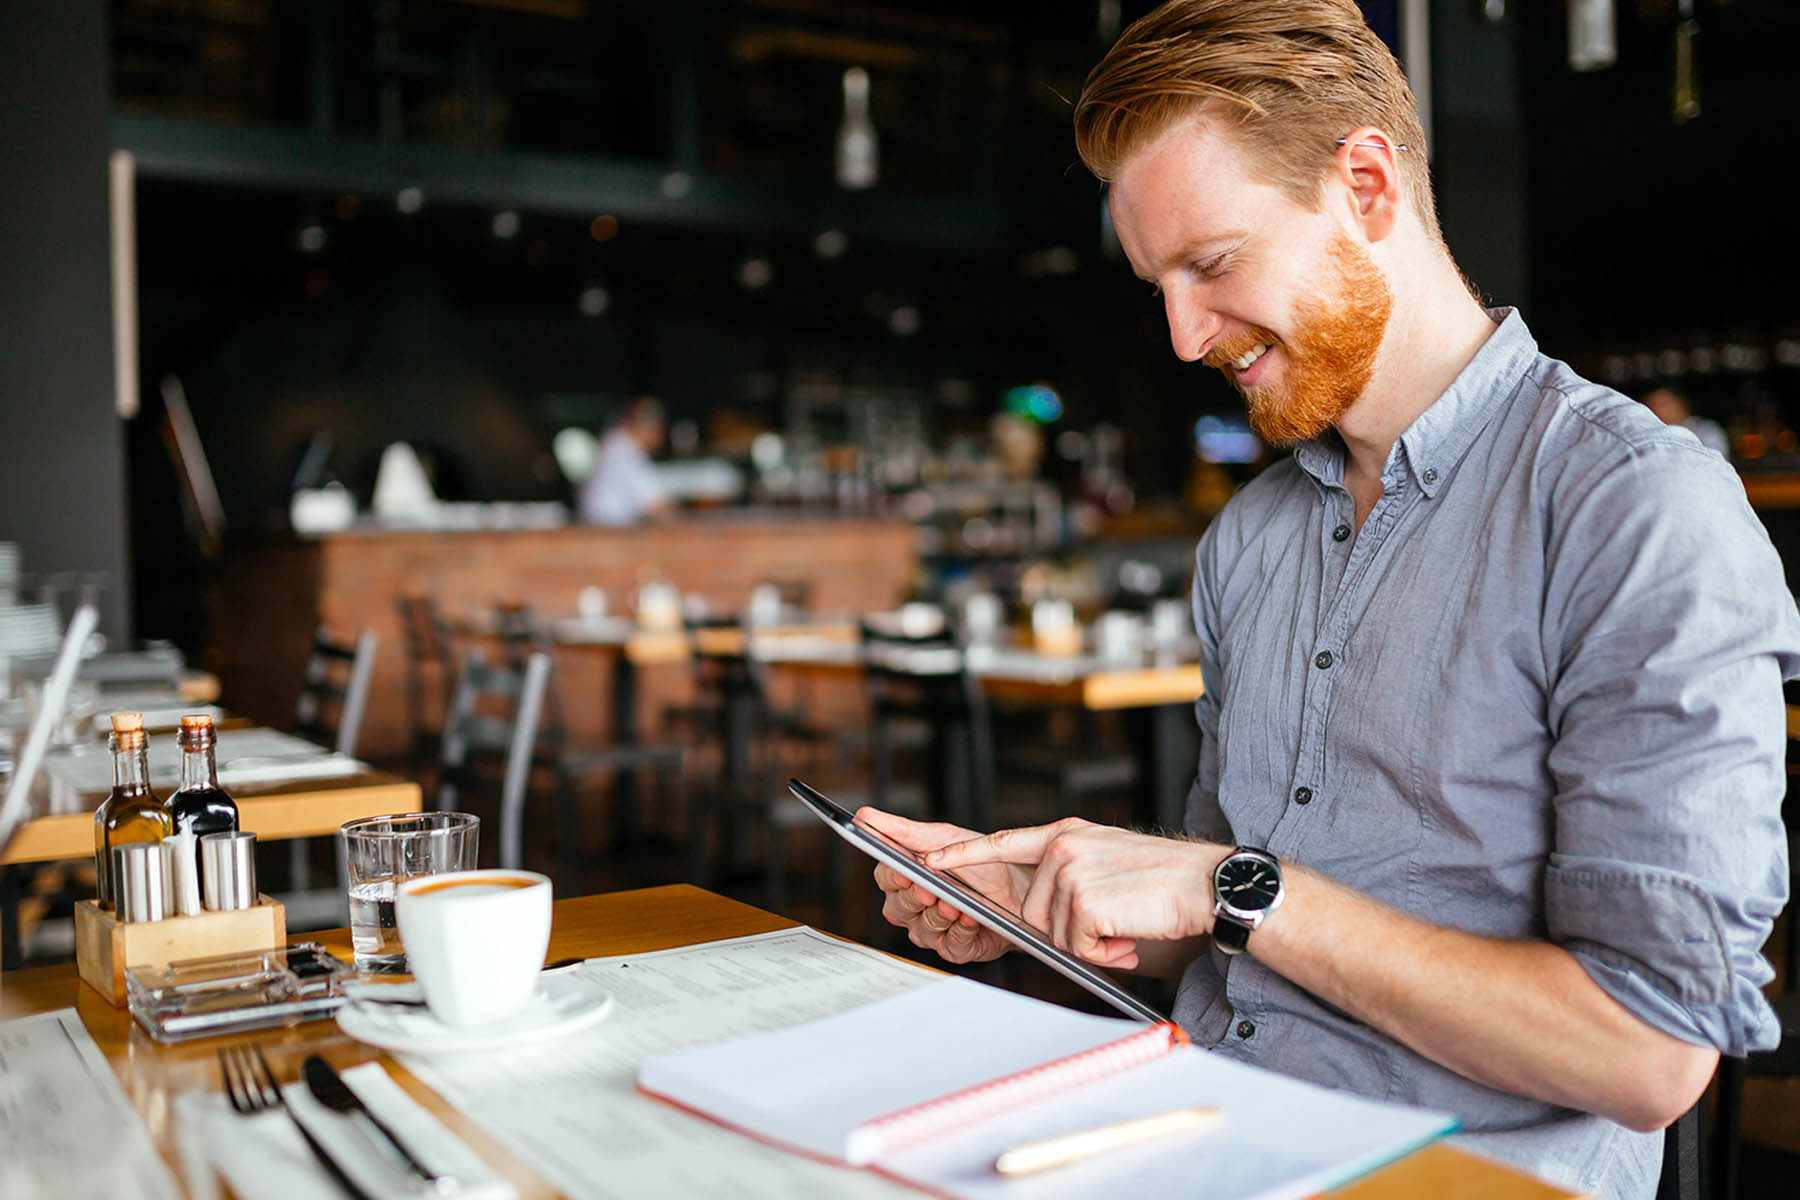 Restaurant owner reviewing information on tablet while sitting at a table at his restuarant